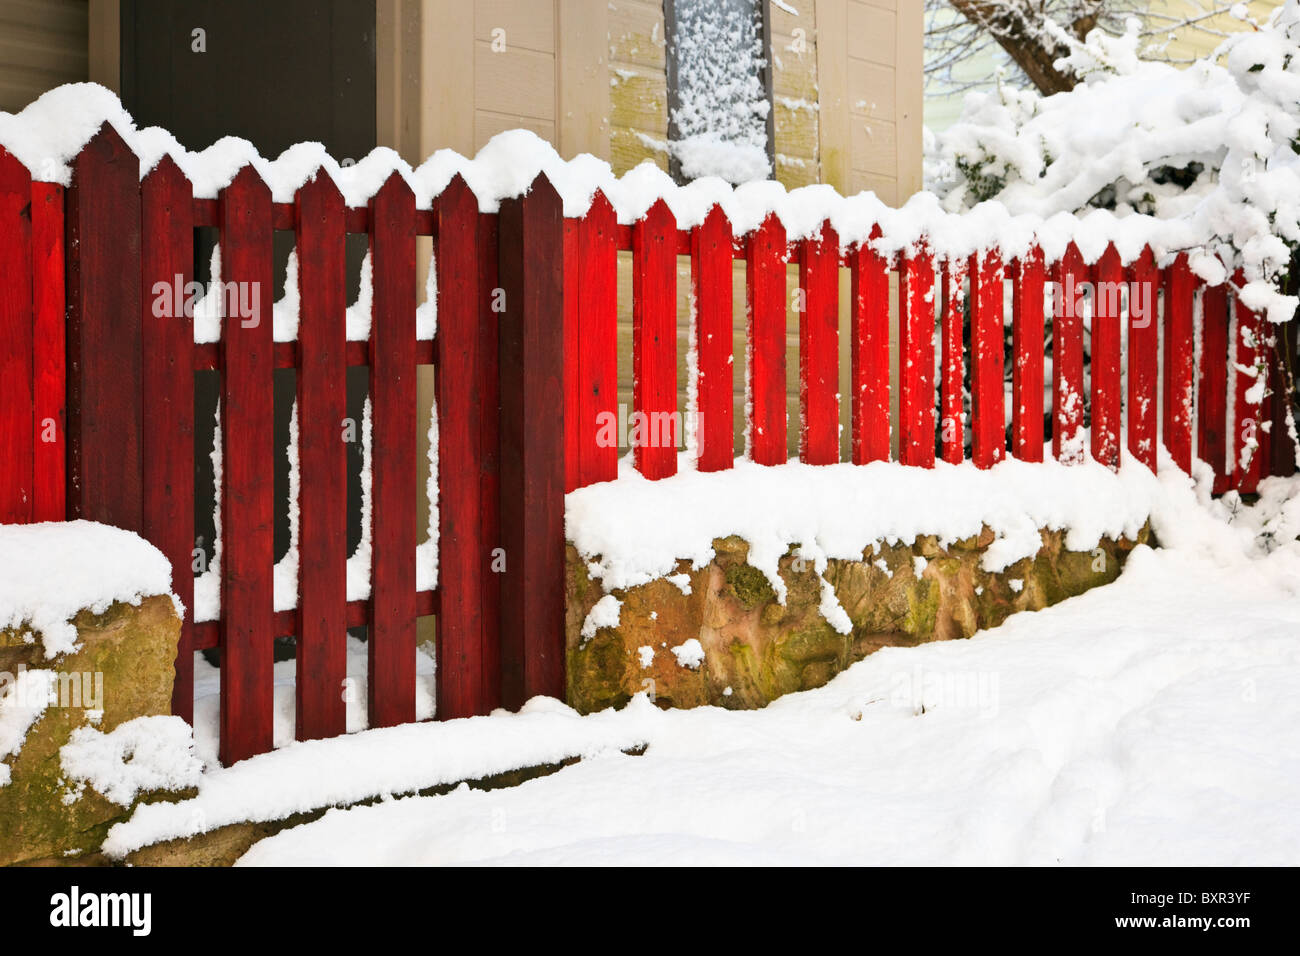 Red wooden picket fence and gate boundary around a domestic garden property in the snow. UK, Britain. - Stock Image